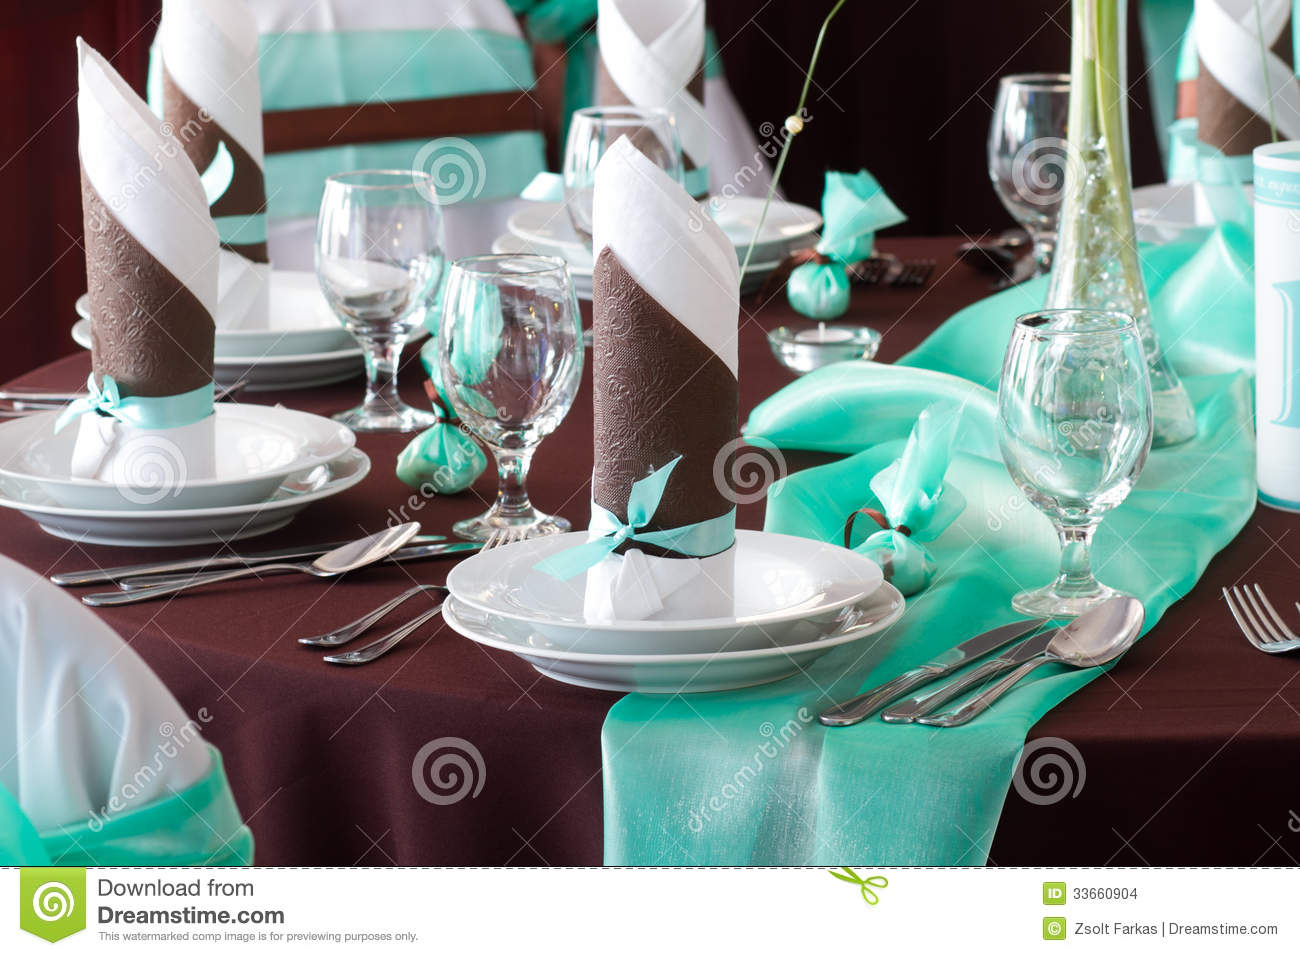 Wedding table set with decoration for fine dining or another catered wedding table set with decoration for fine dining or another catered event junglespirit Choice Image